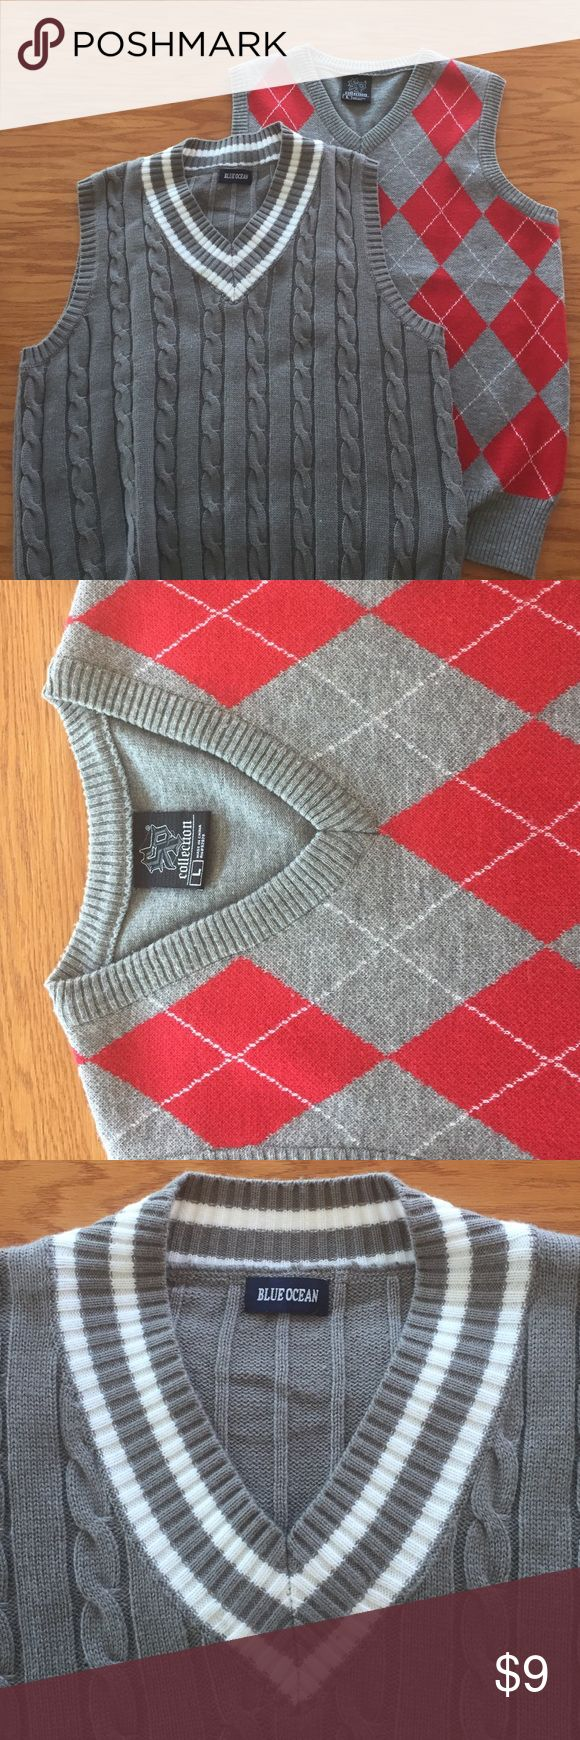 MEN SWEATER VEST There are two sweater vests. They both are in great condition and very comfortable. Both gray except one has white stripes on it and the other has a red pattern on it. Unlisted Sweaters V-Neck